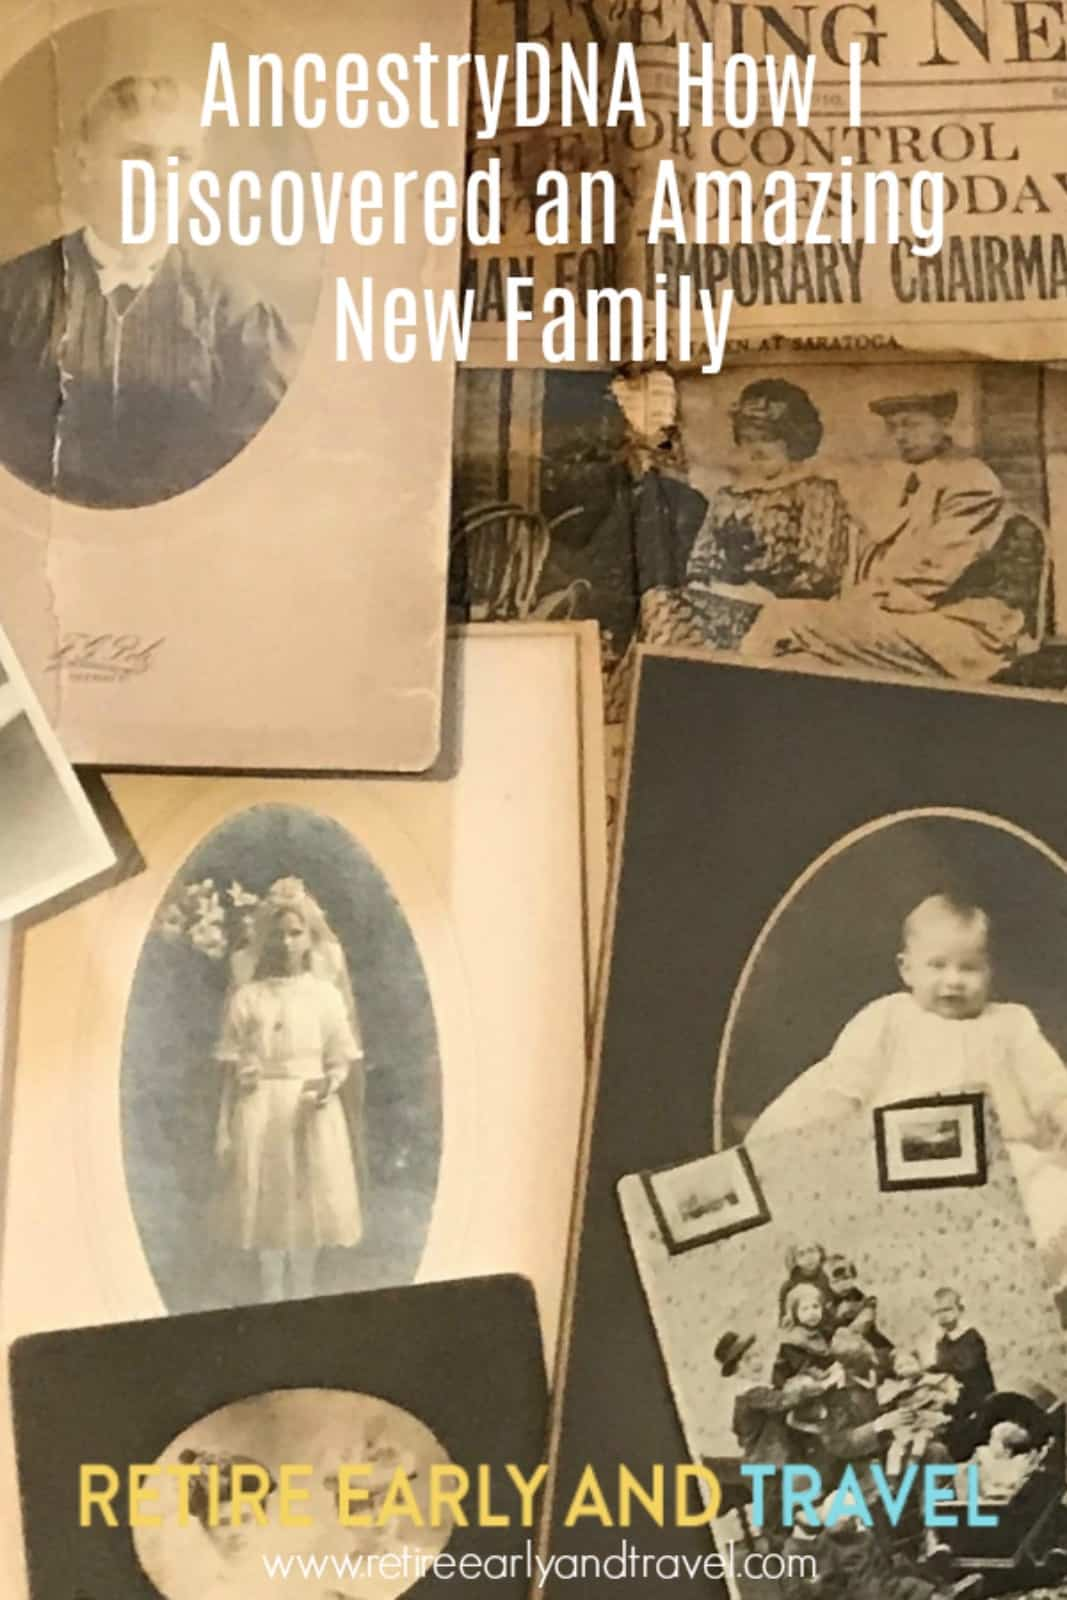 AncestryDNA How I Discovered an Amazing New Family